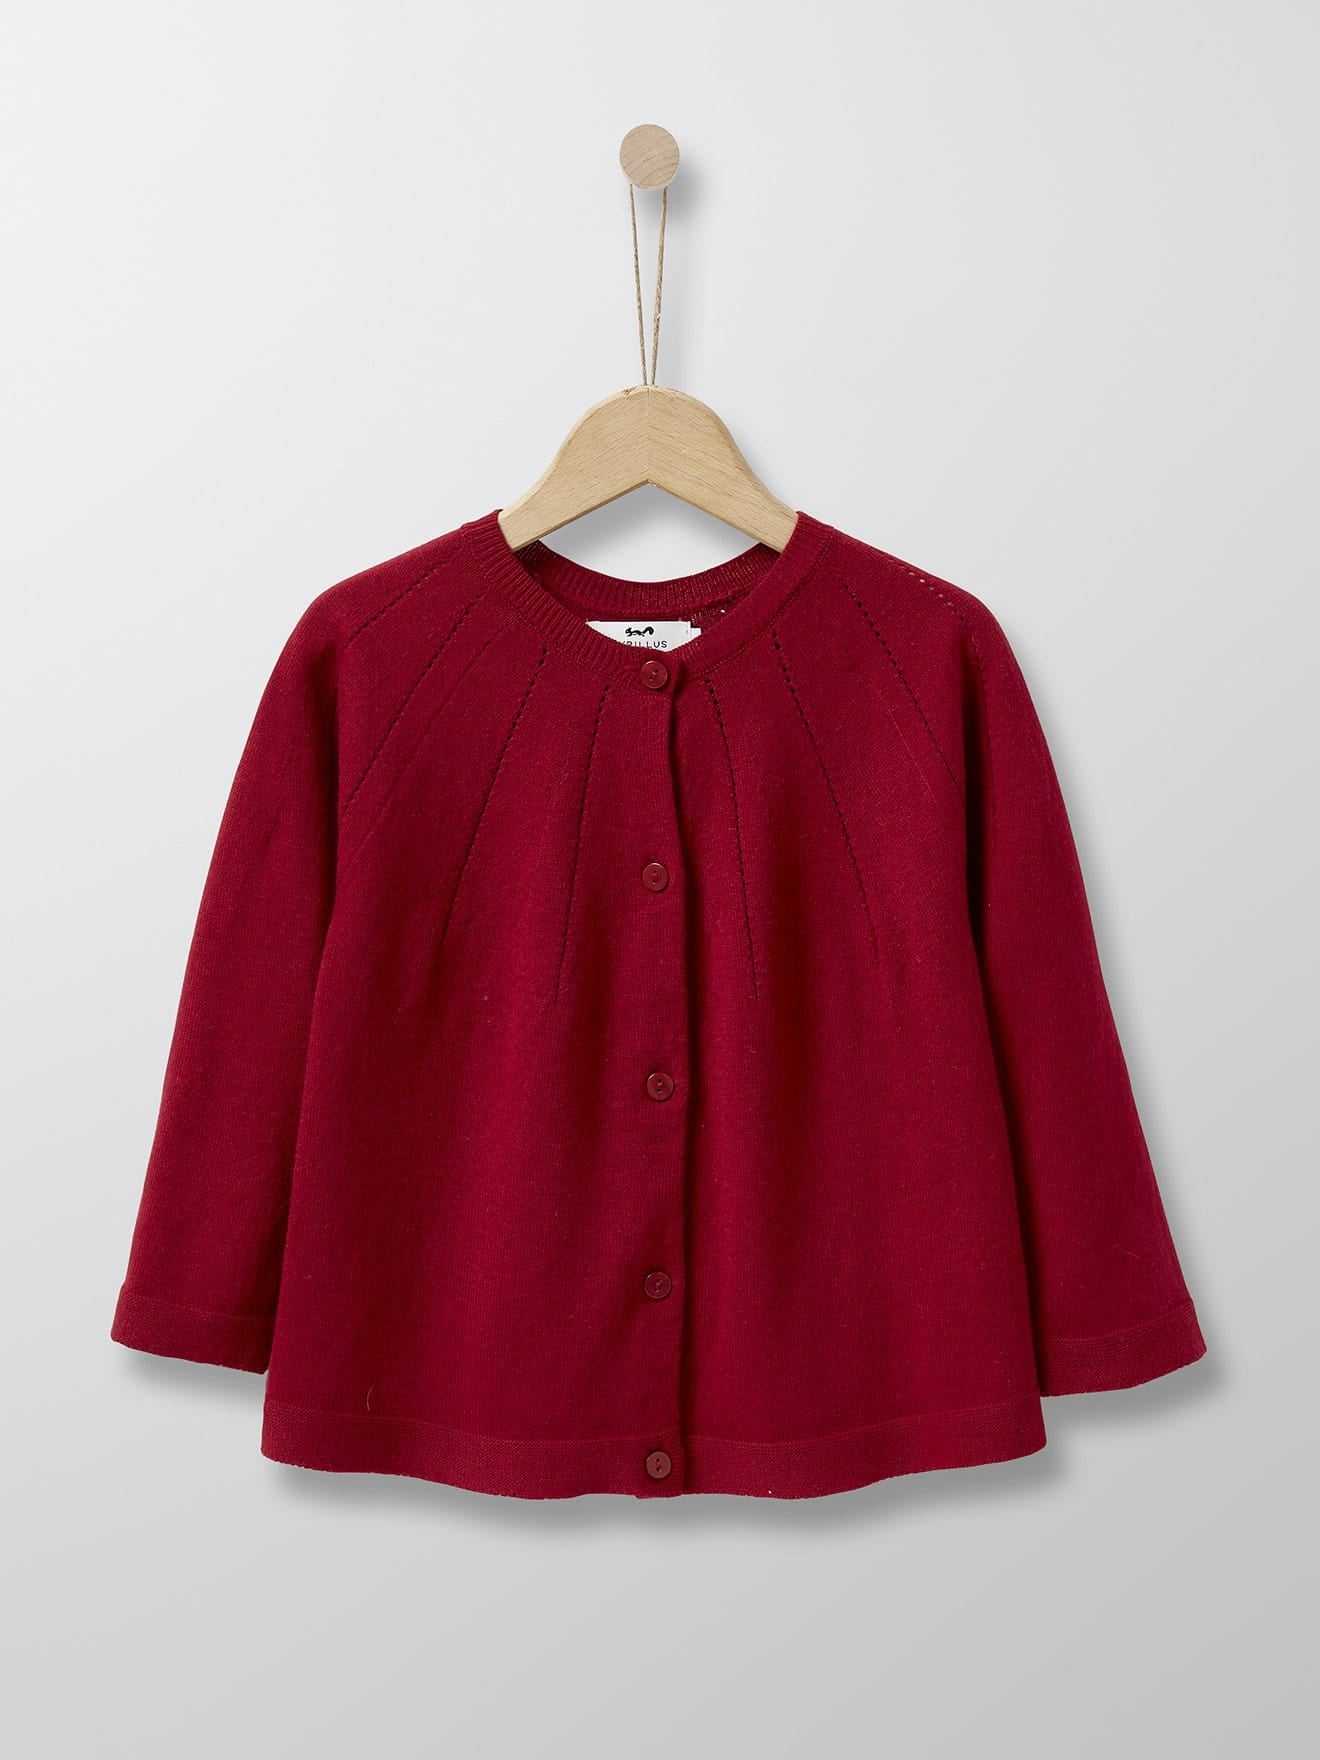 Cyrillus Paris | Pointelle Cardigan | Dark Red | 3Y, 4Y, 6Y